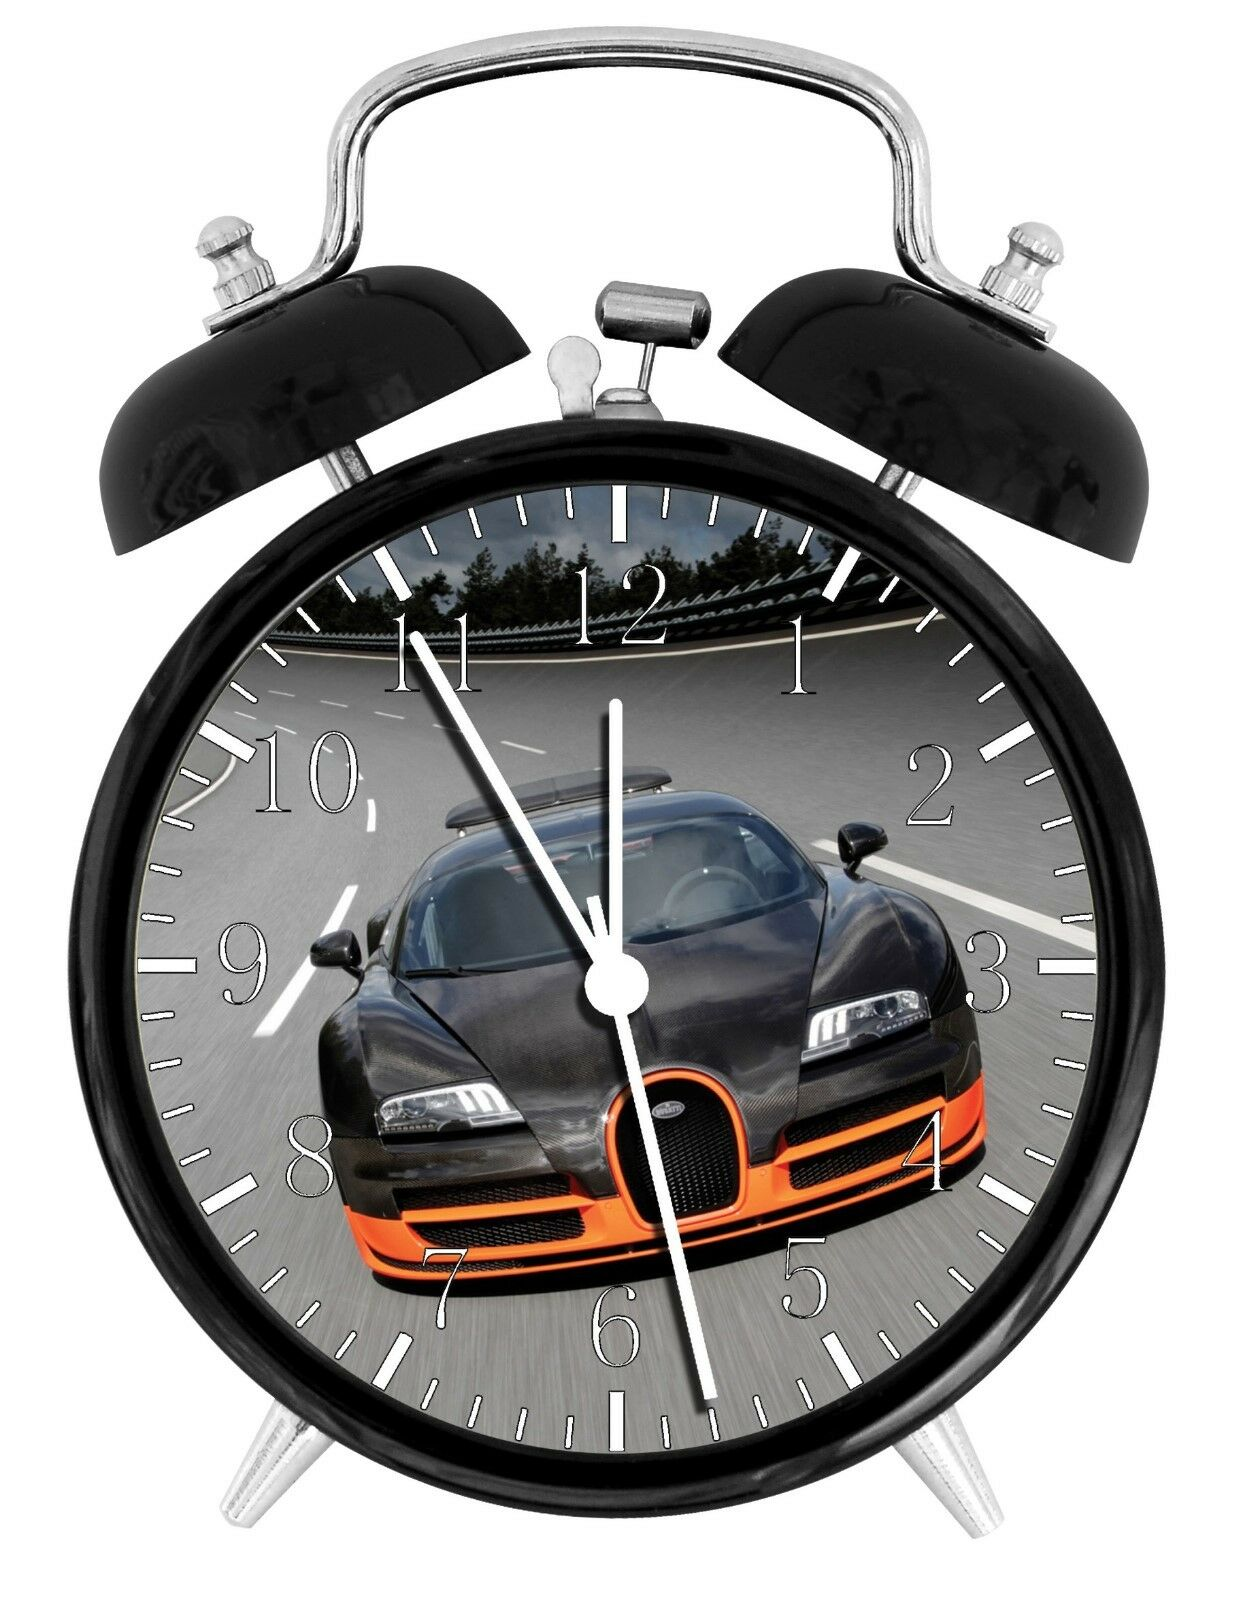 "Bugatti Veyron Alarm Desk Clock 3.75"" Room Office Decor W09 Will Be a Nice Gift"